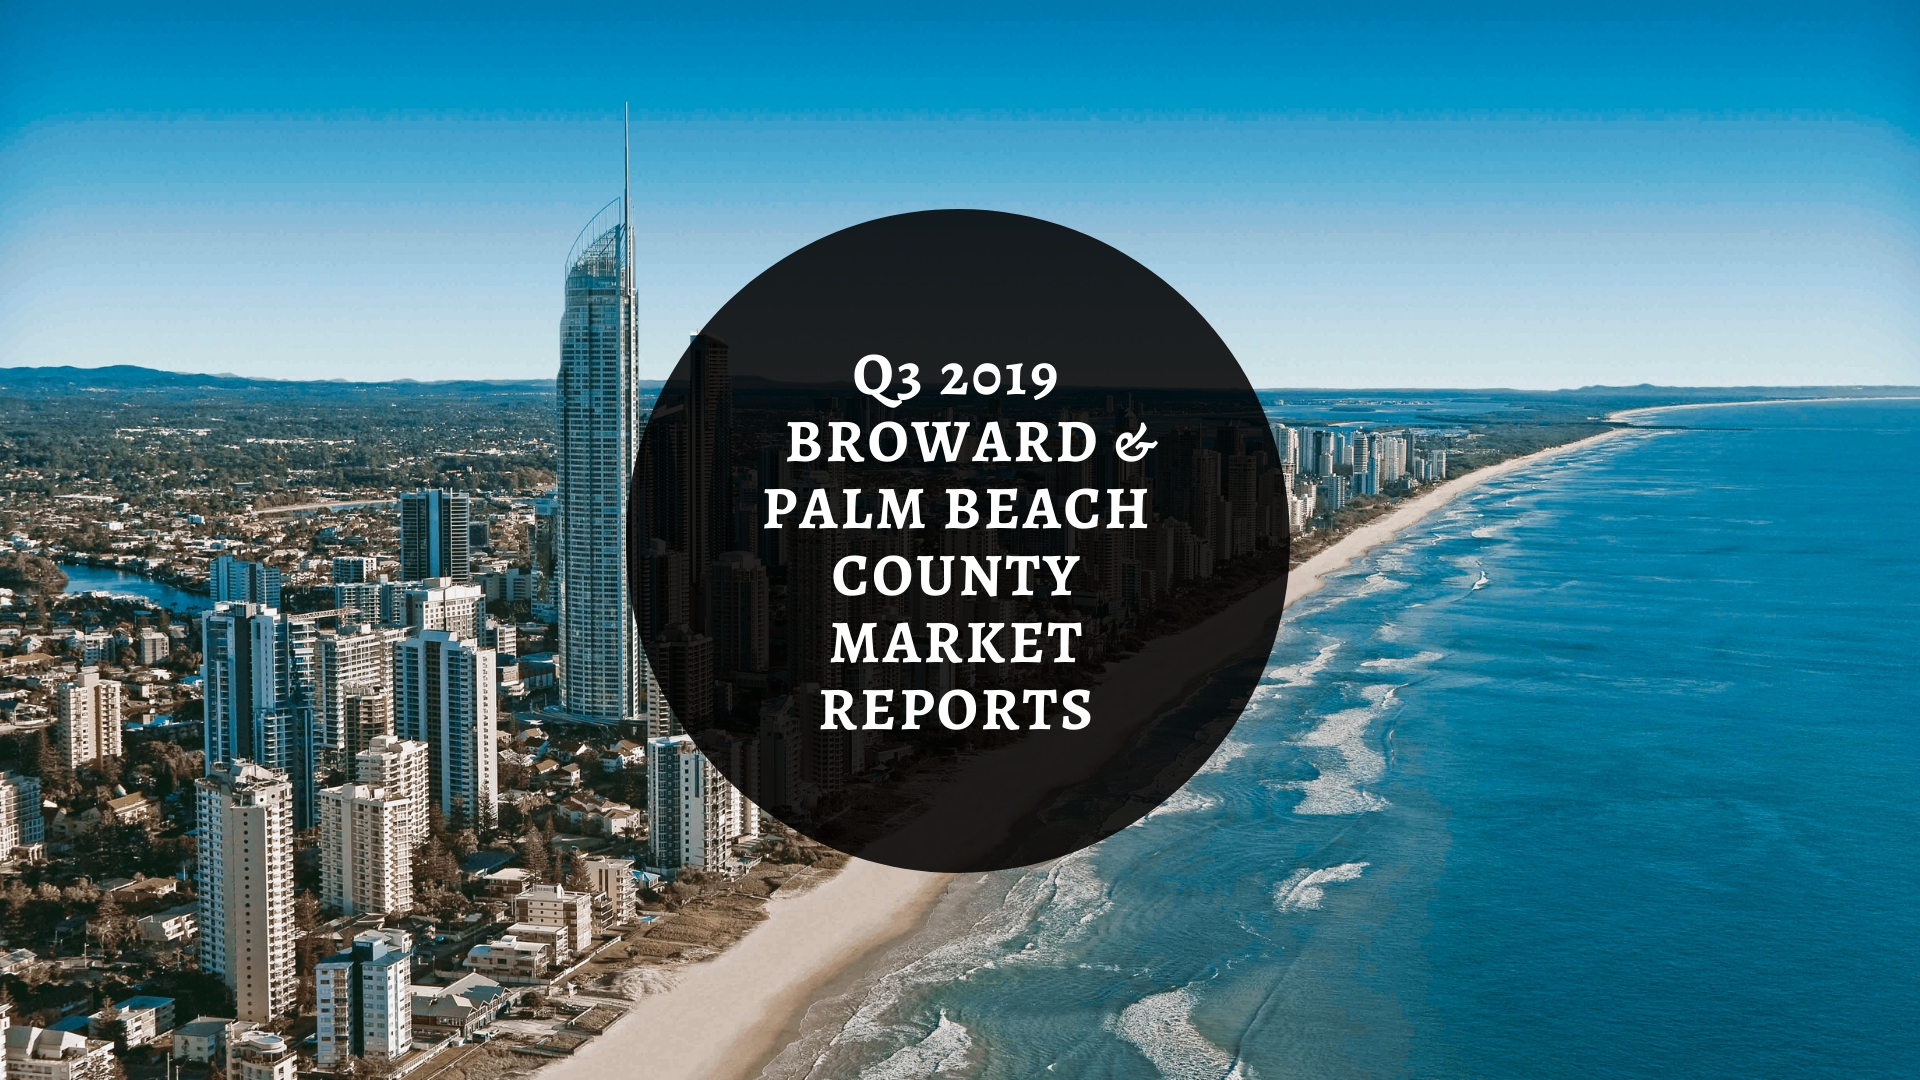 We Are Pleased To Provide You With This Copy Of Berger Commercial Realty Corp.'s 2019 Q3 Broward And Palm Beach County Market Reports For The Office And Industrial Real Estate Markets